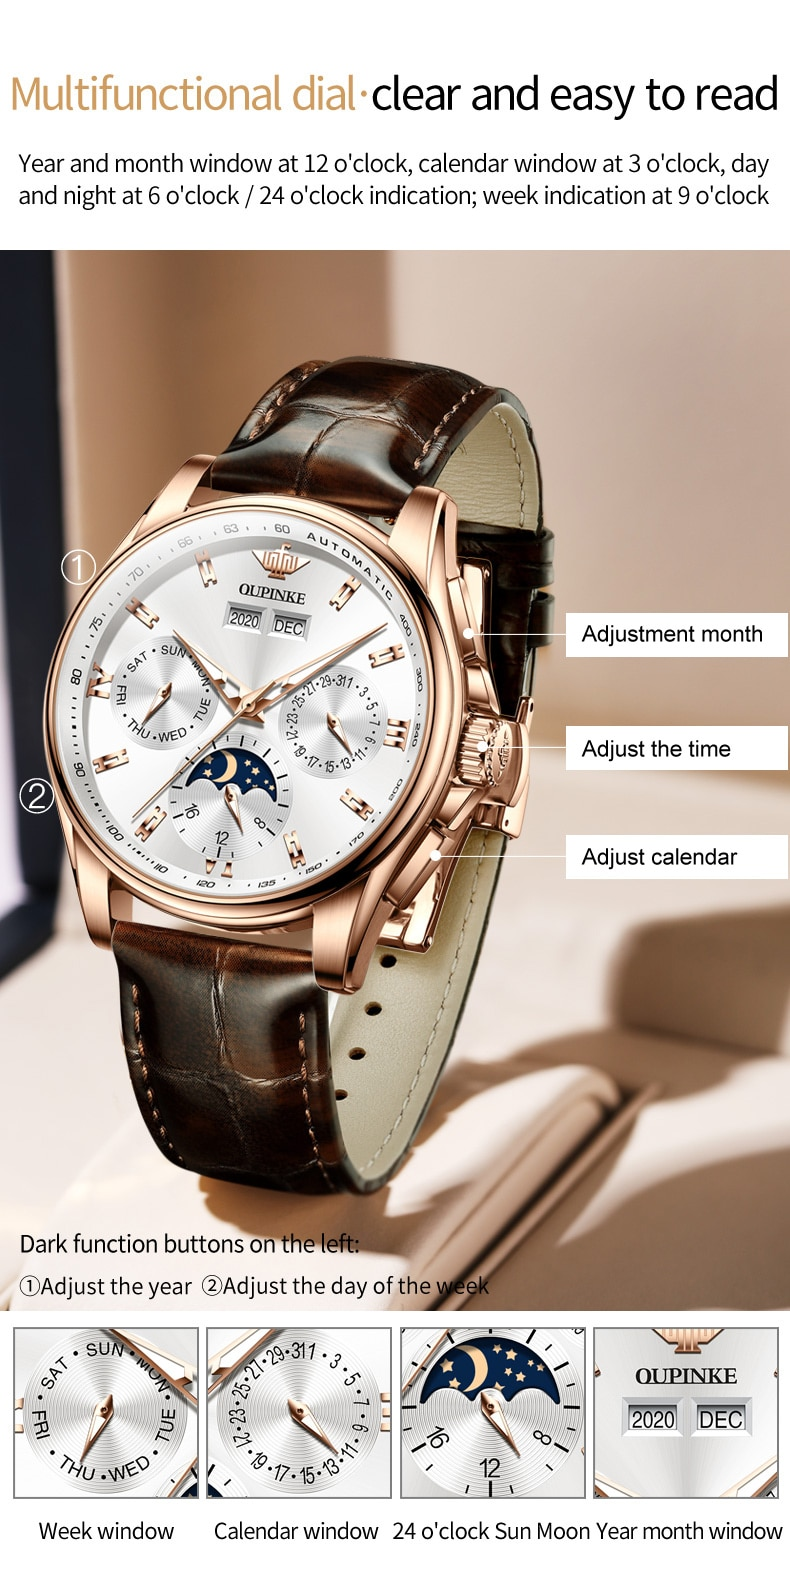 H40698a757ea14731ab01c58777bf1e3br - OUPINKE Men Mechanical Watch Luxury Automatic Watch Leather Sapphire Waterproof Sports Moon Phase Wristwatch Montre homme